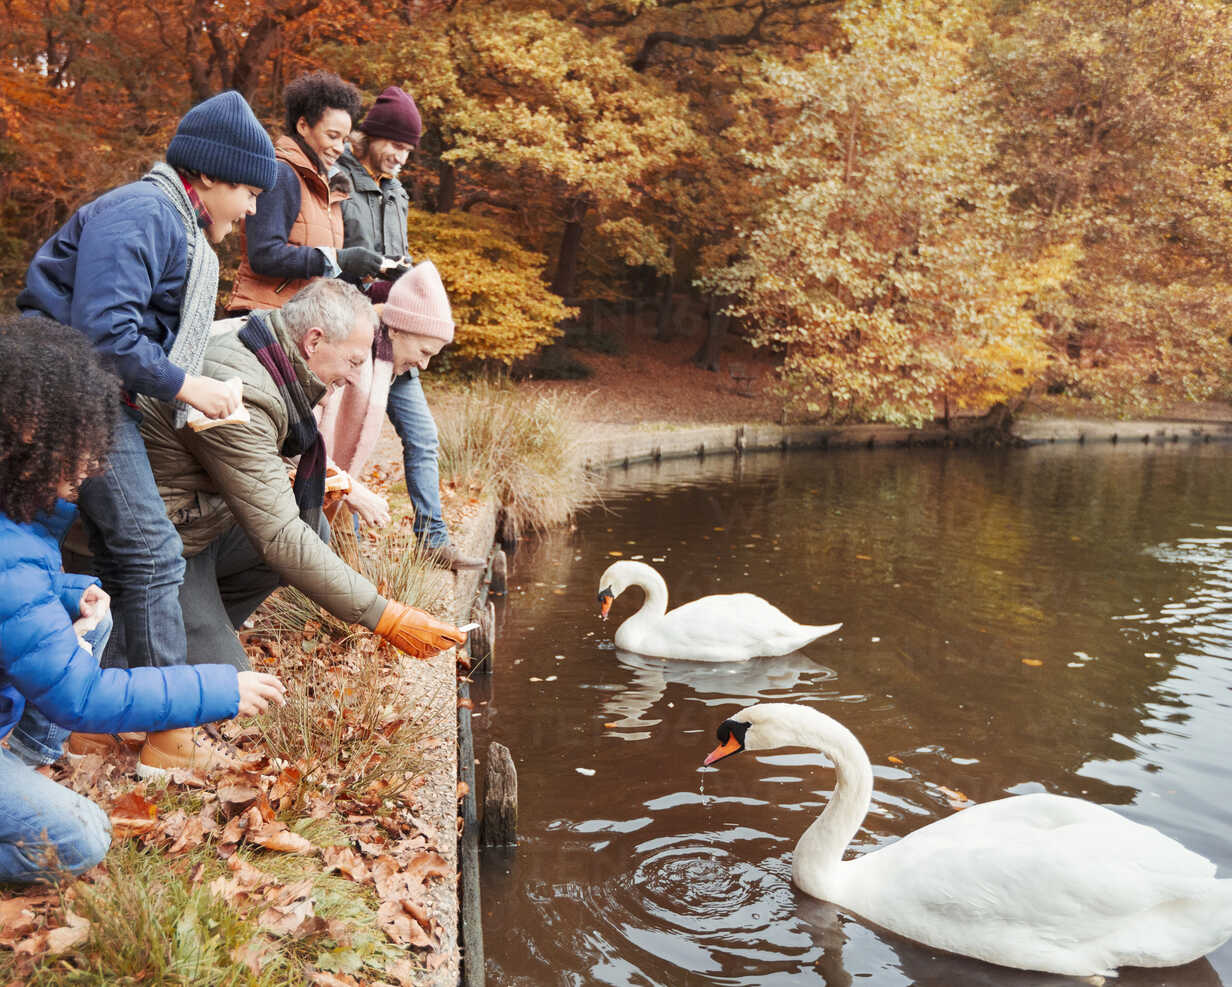 Multi-generation family feeding swans at pond in autumn park - CAIF05439 - Robert Daly/Westend61